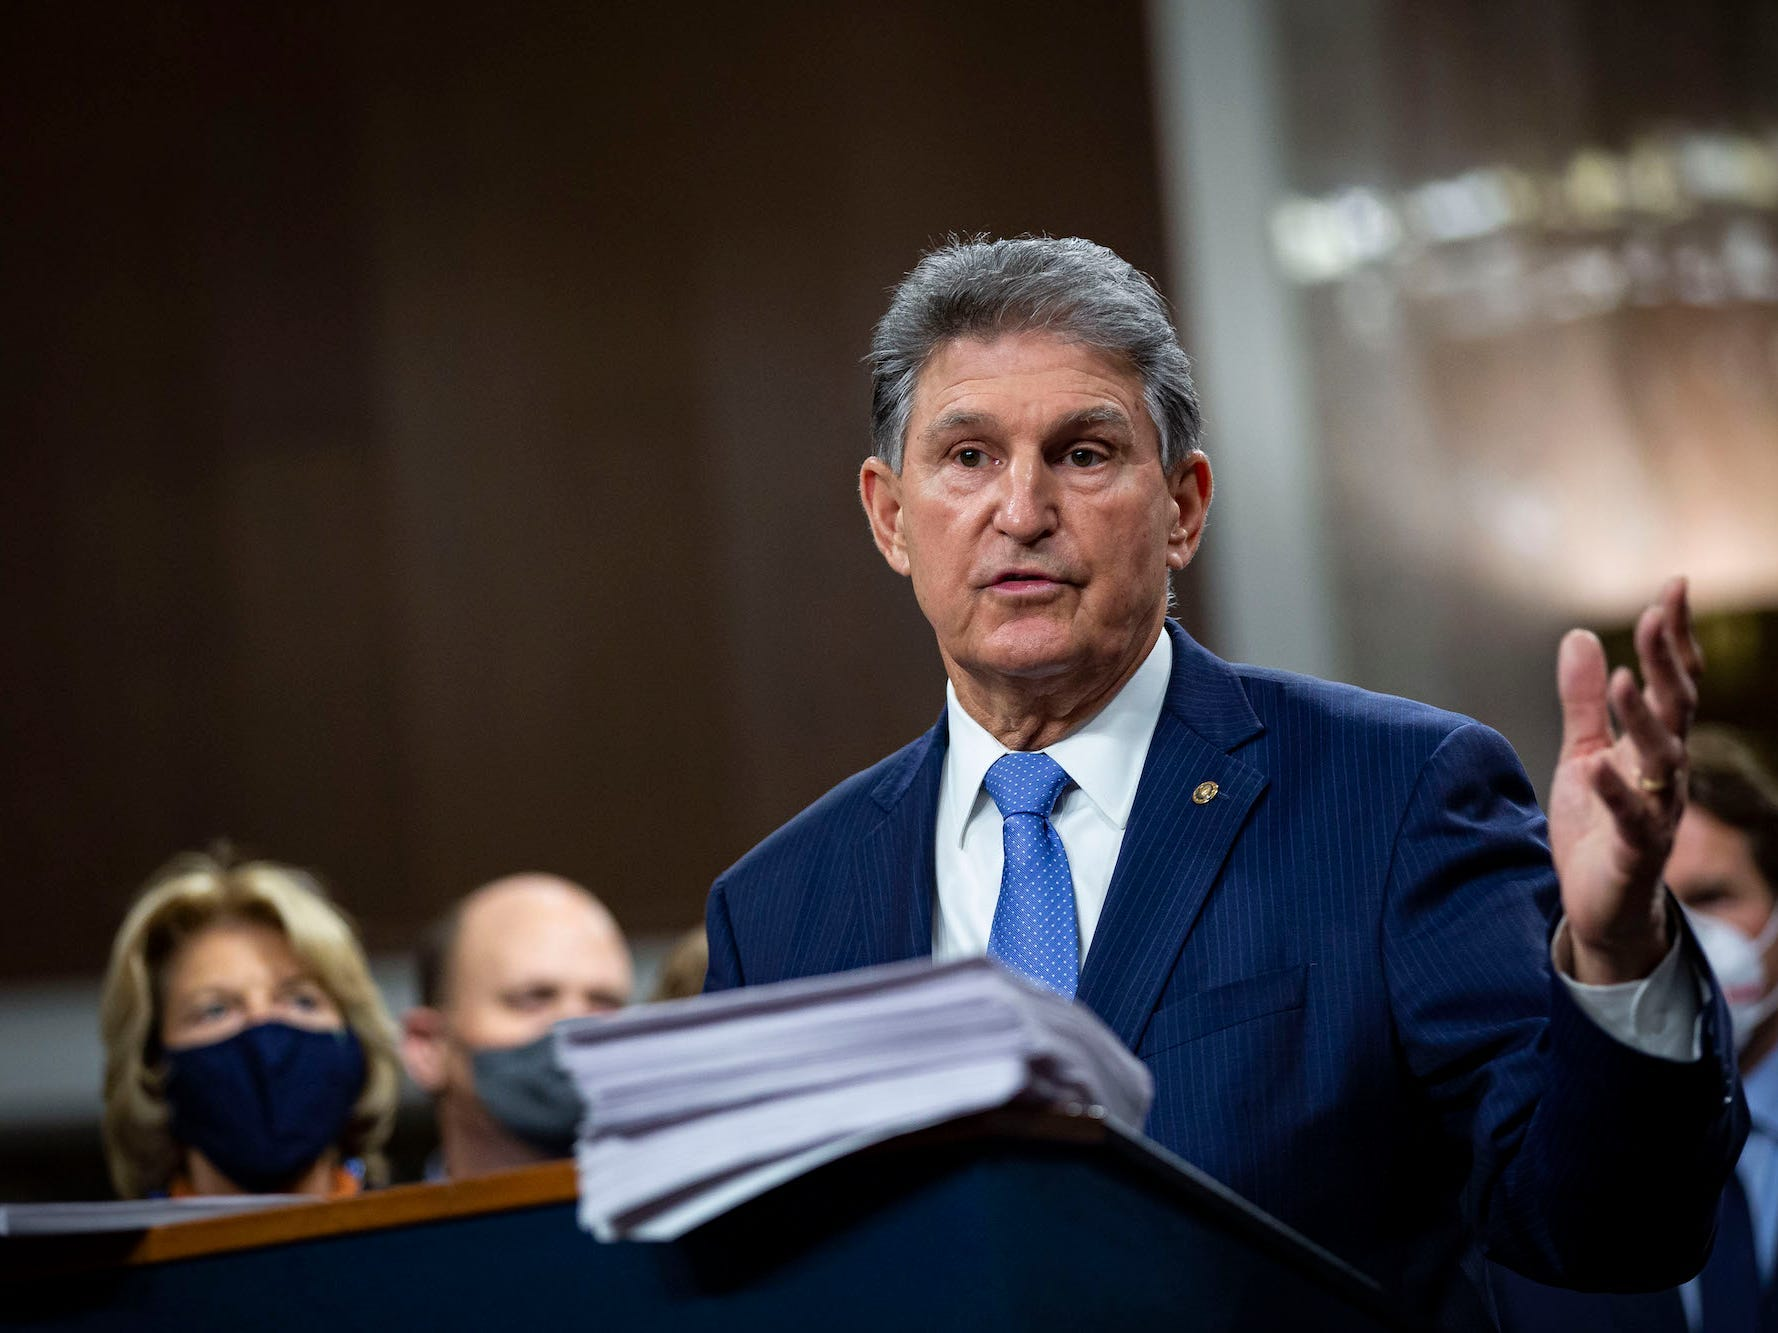 Joe Manchin poses a risk to elevating the minimum wage, though 250,000 West Virginians would maintain the support of the rise